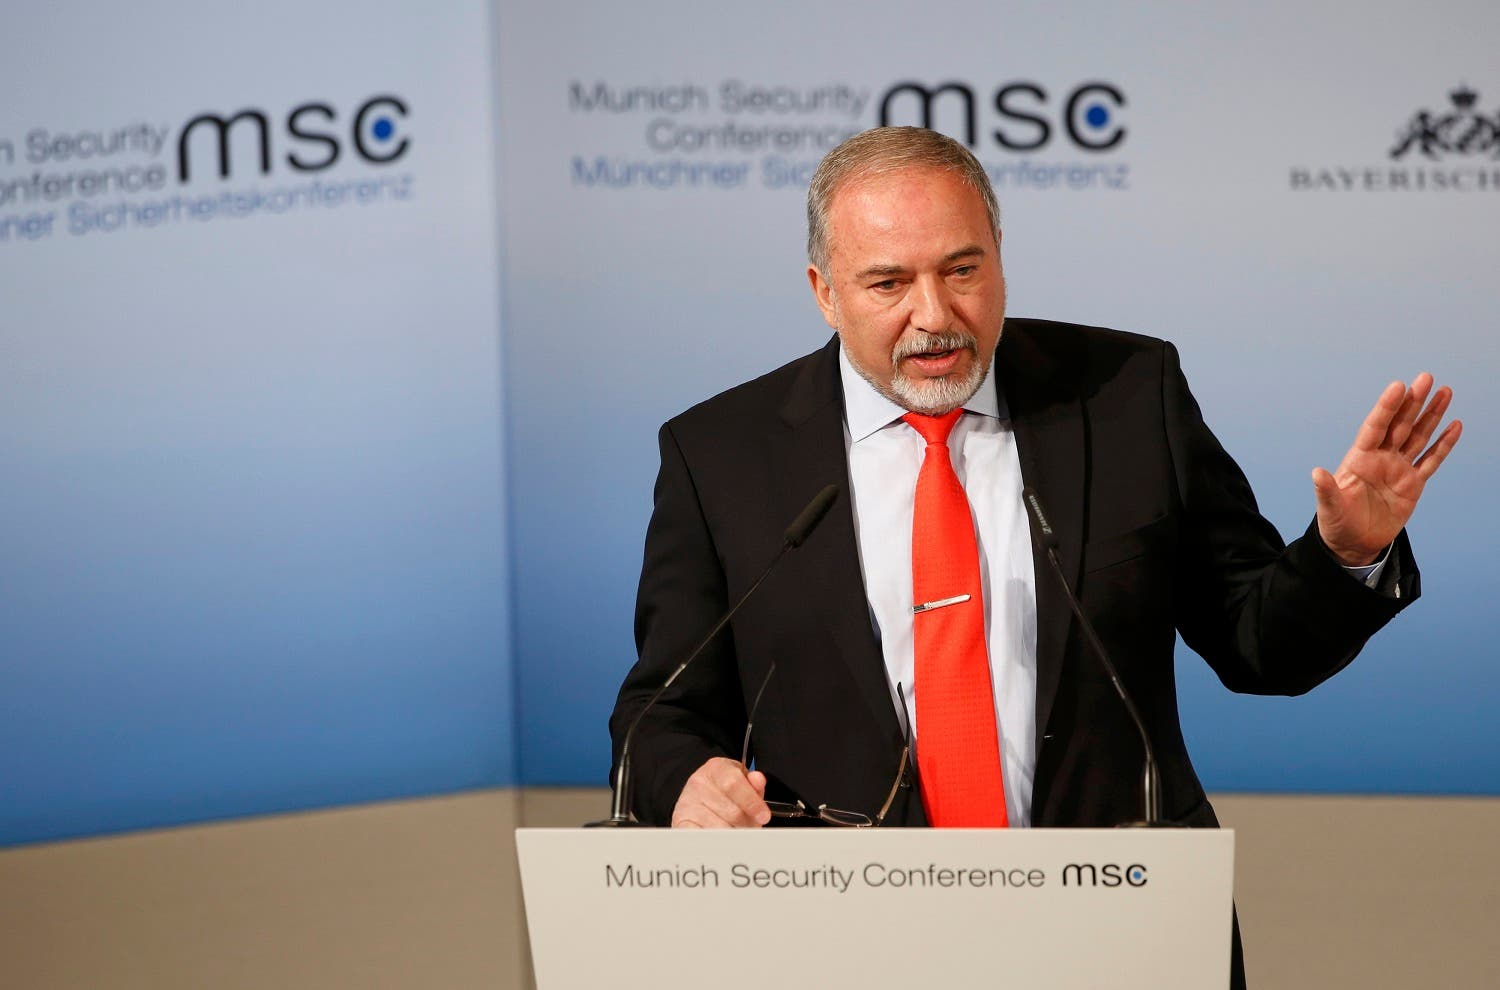 Israel Defense Minister Avigdor Lieberman speaks at the 53rd Munich Security Conference in Munich, Germany, February 19, 2017. (Reuters)